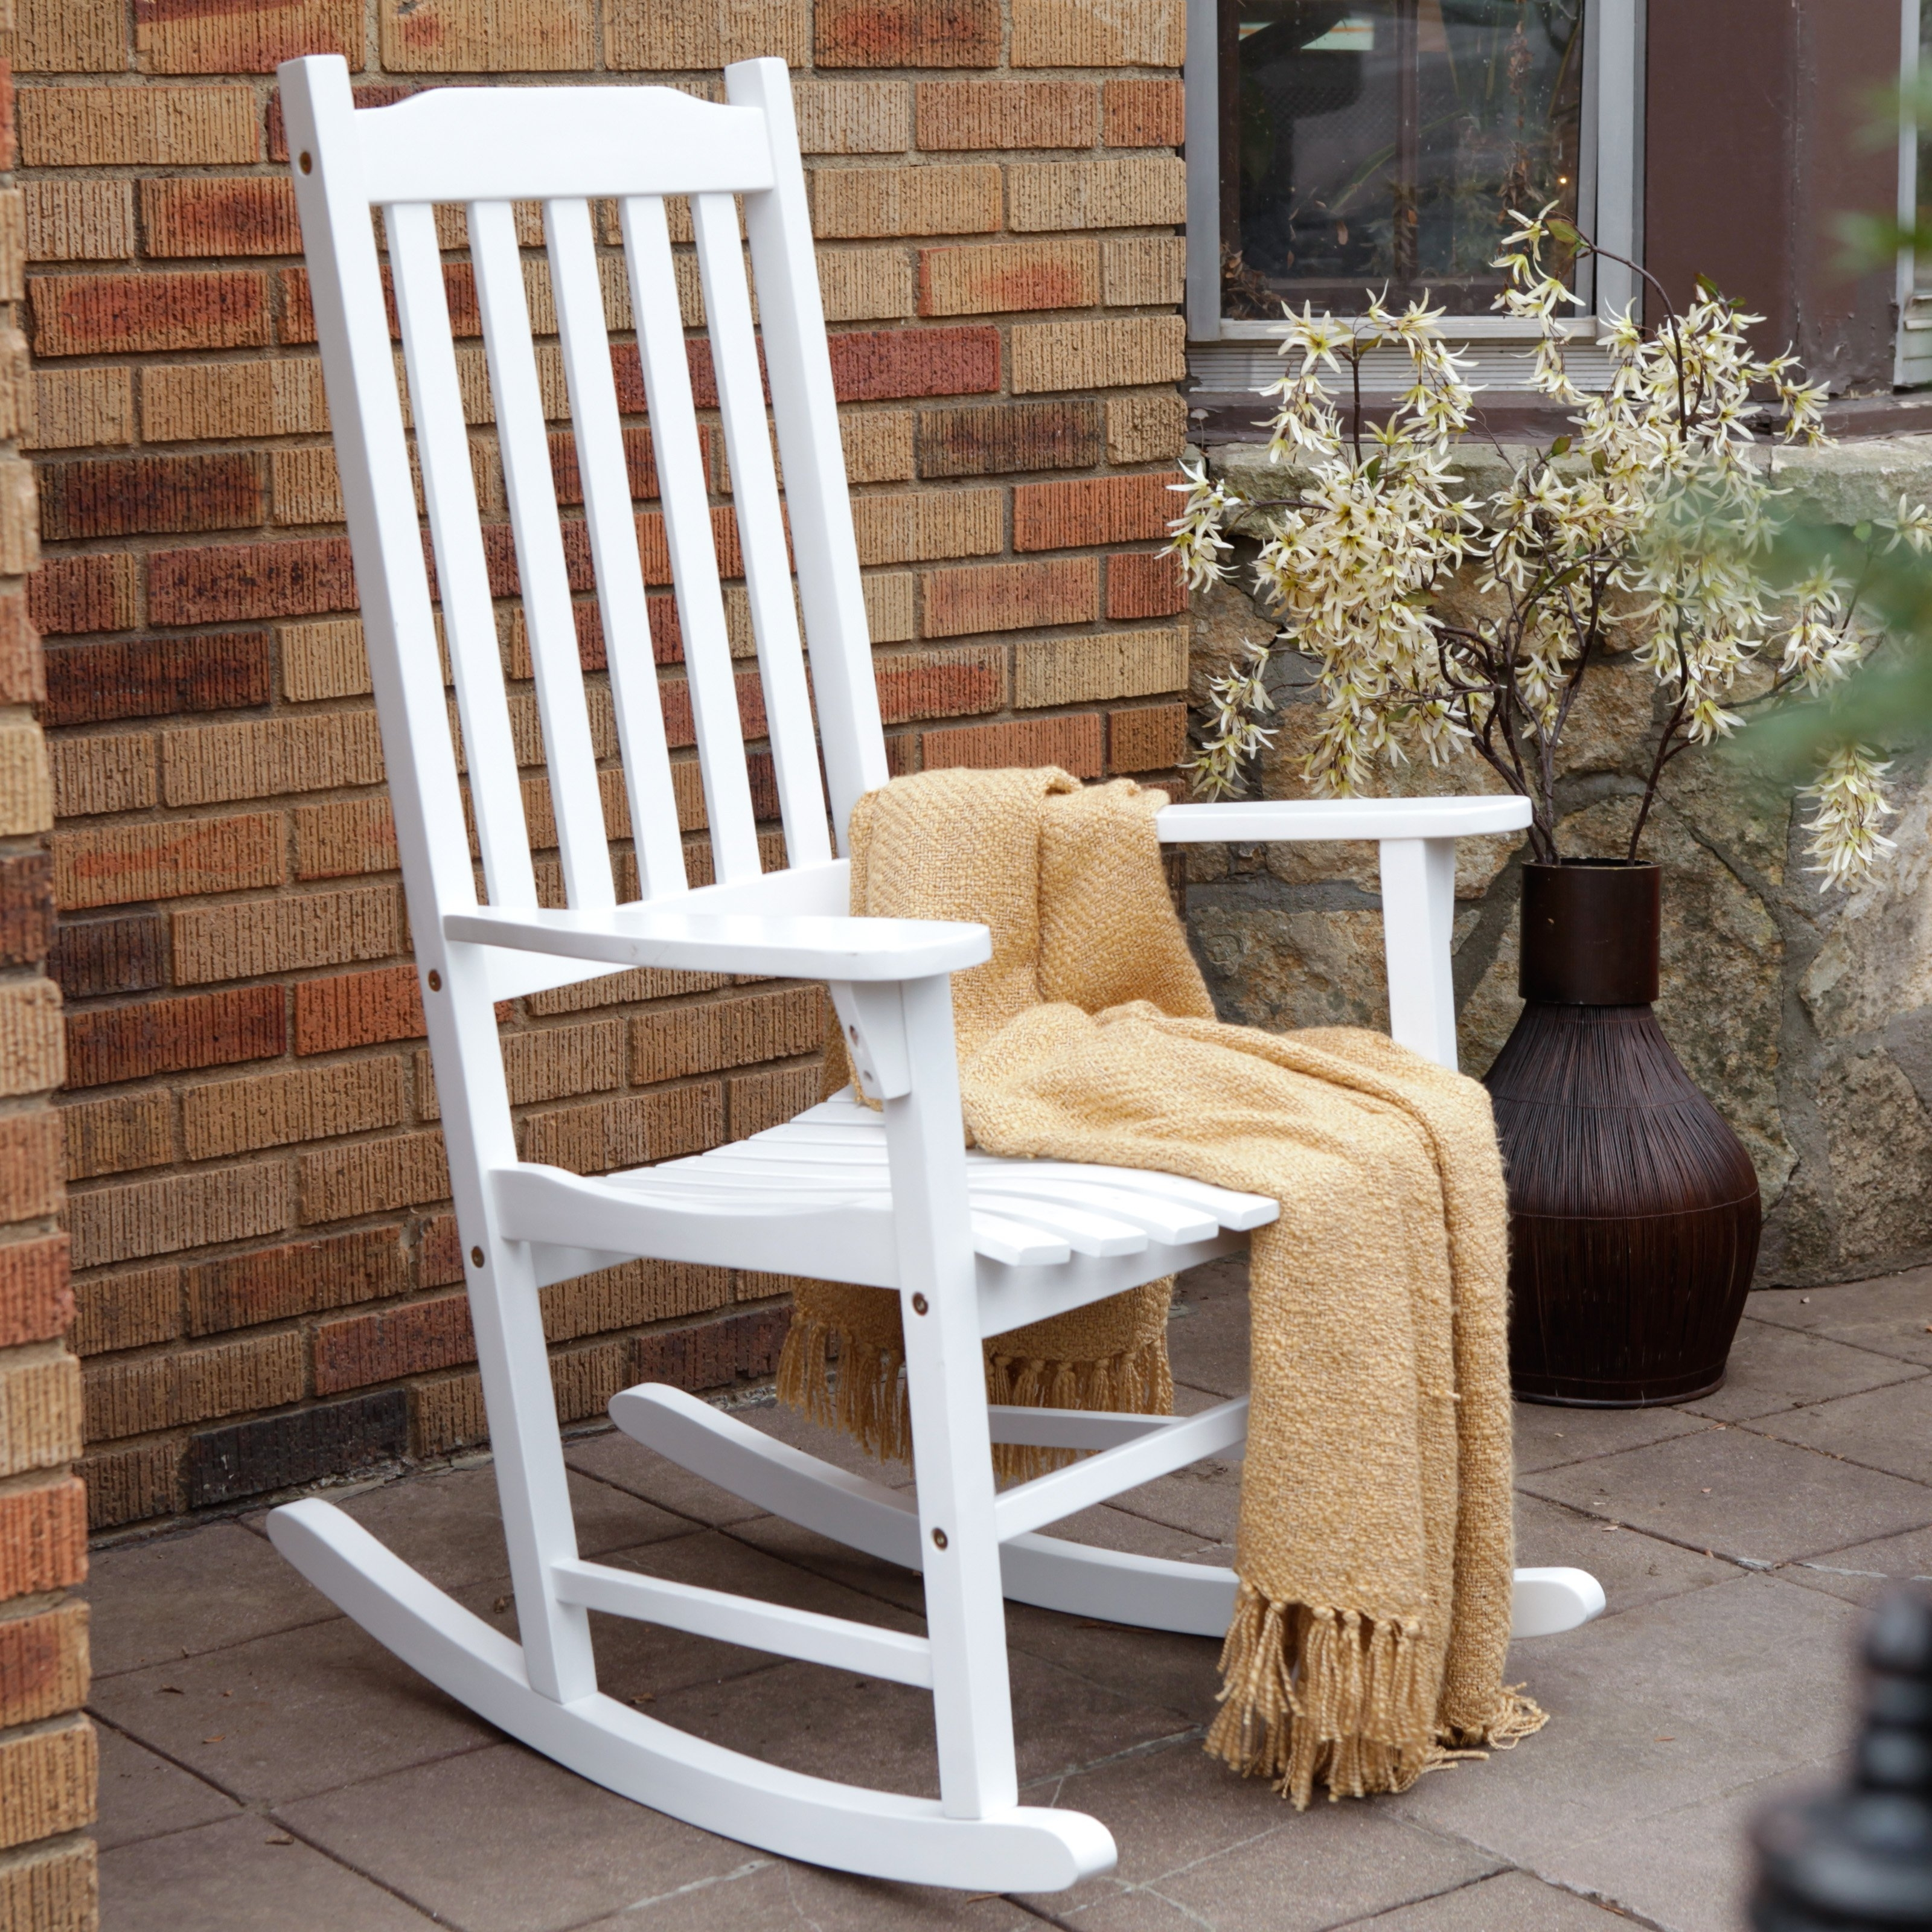 Outdoor Rocking Chairs Intended For Most Current Coral Coast Indoor/outdoor Mission Slat Rocking Chair – White (View 13 of 20)